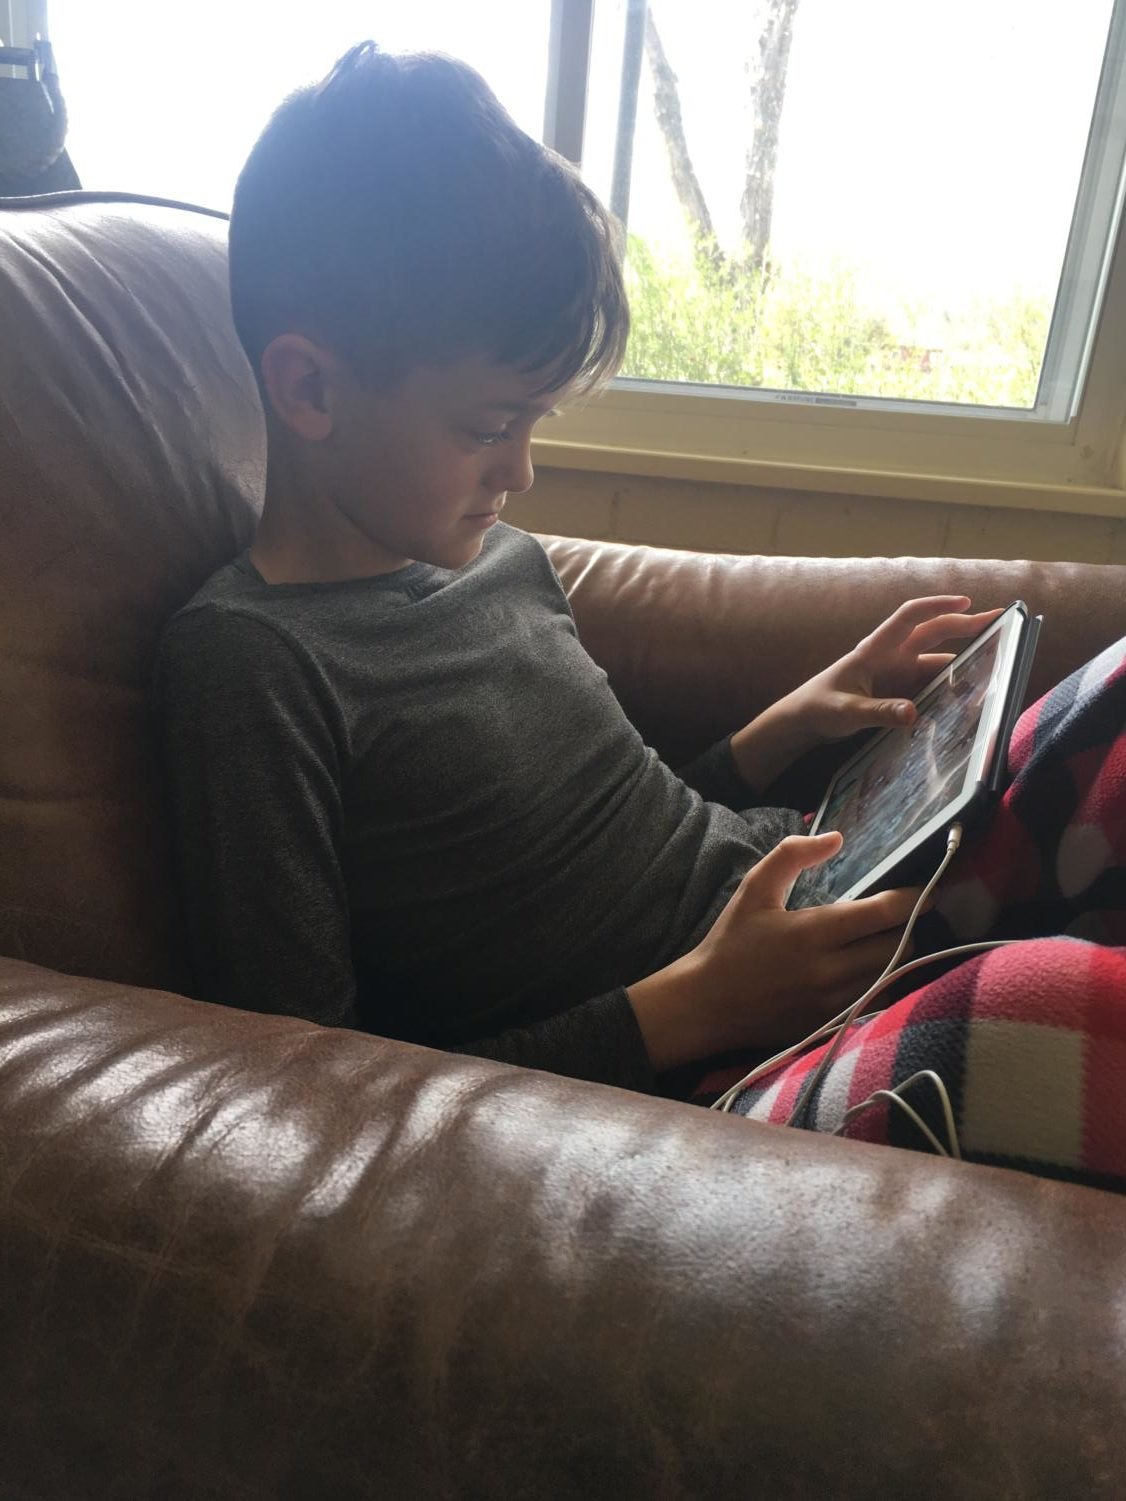 Gage Clymer playing a game on his iPad. (photo by Jody Clymer)